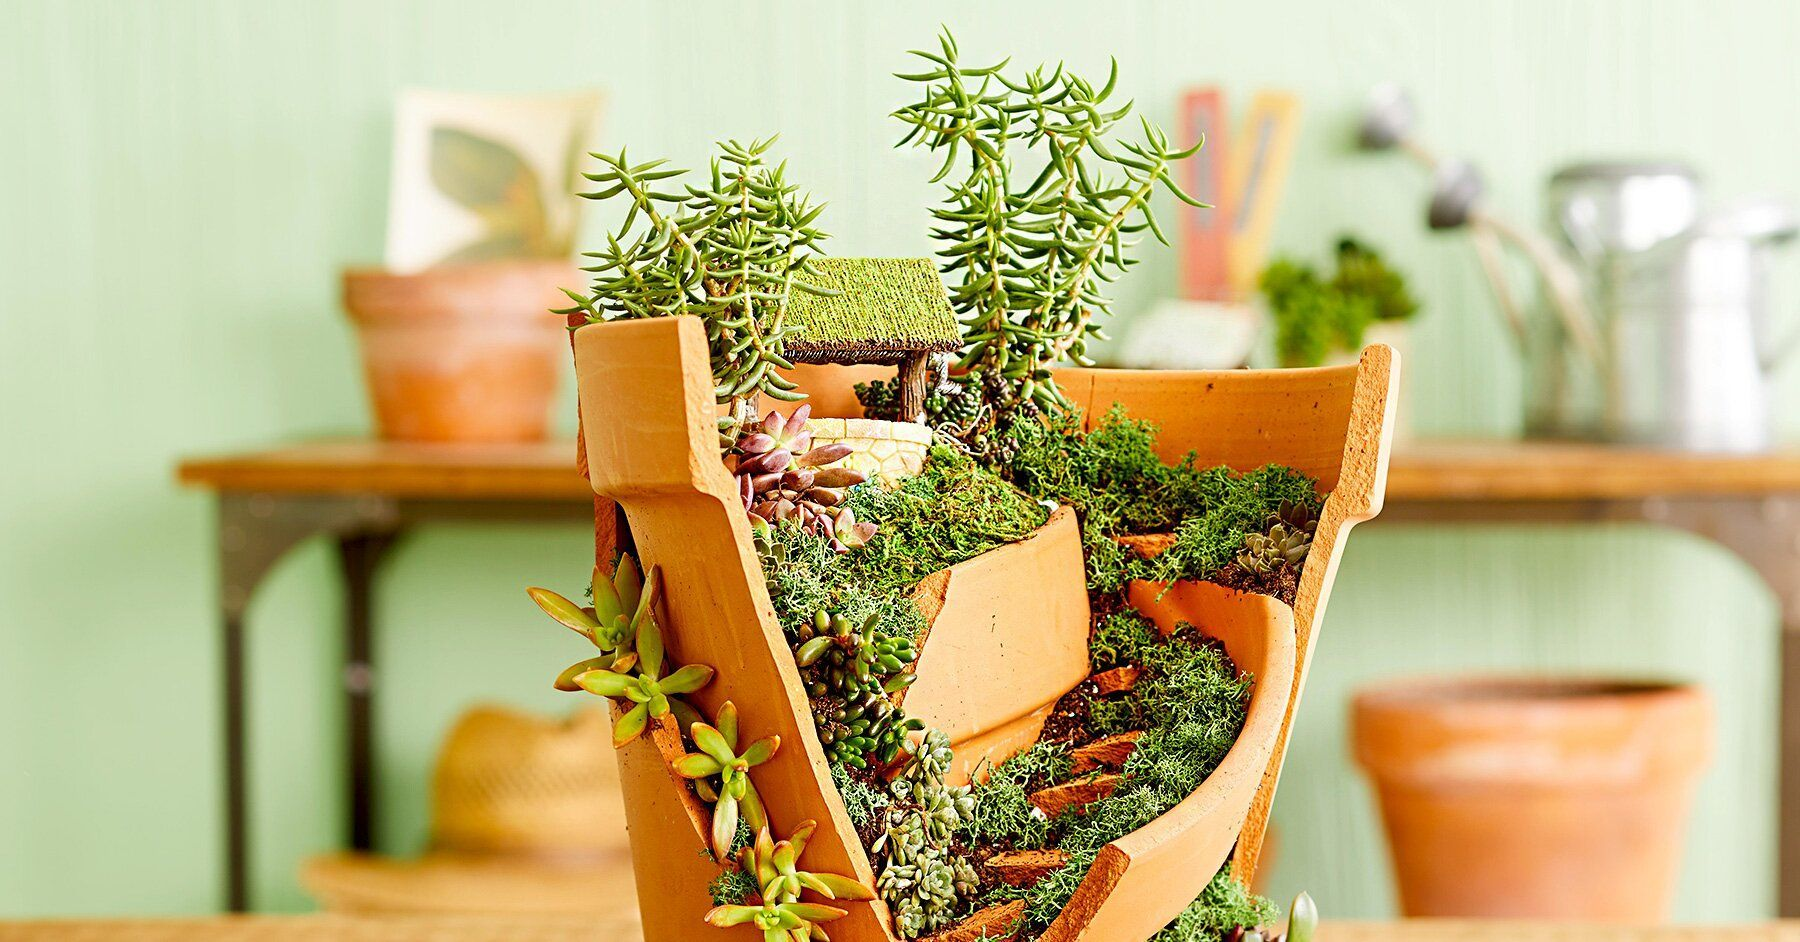 5047003f5205e6225d23b418a53baaf4 - Better Homes And Gardens Potted Plants Ideas